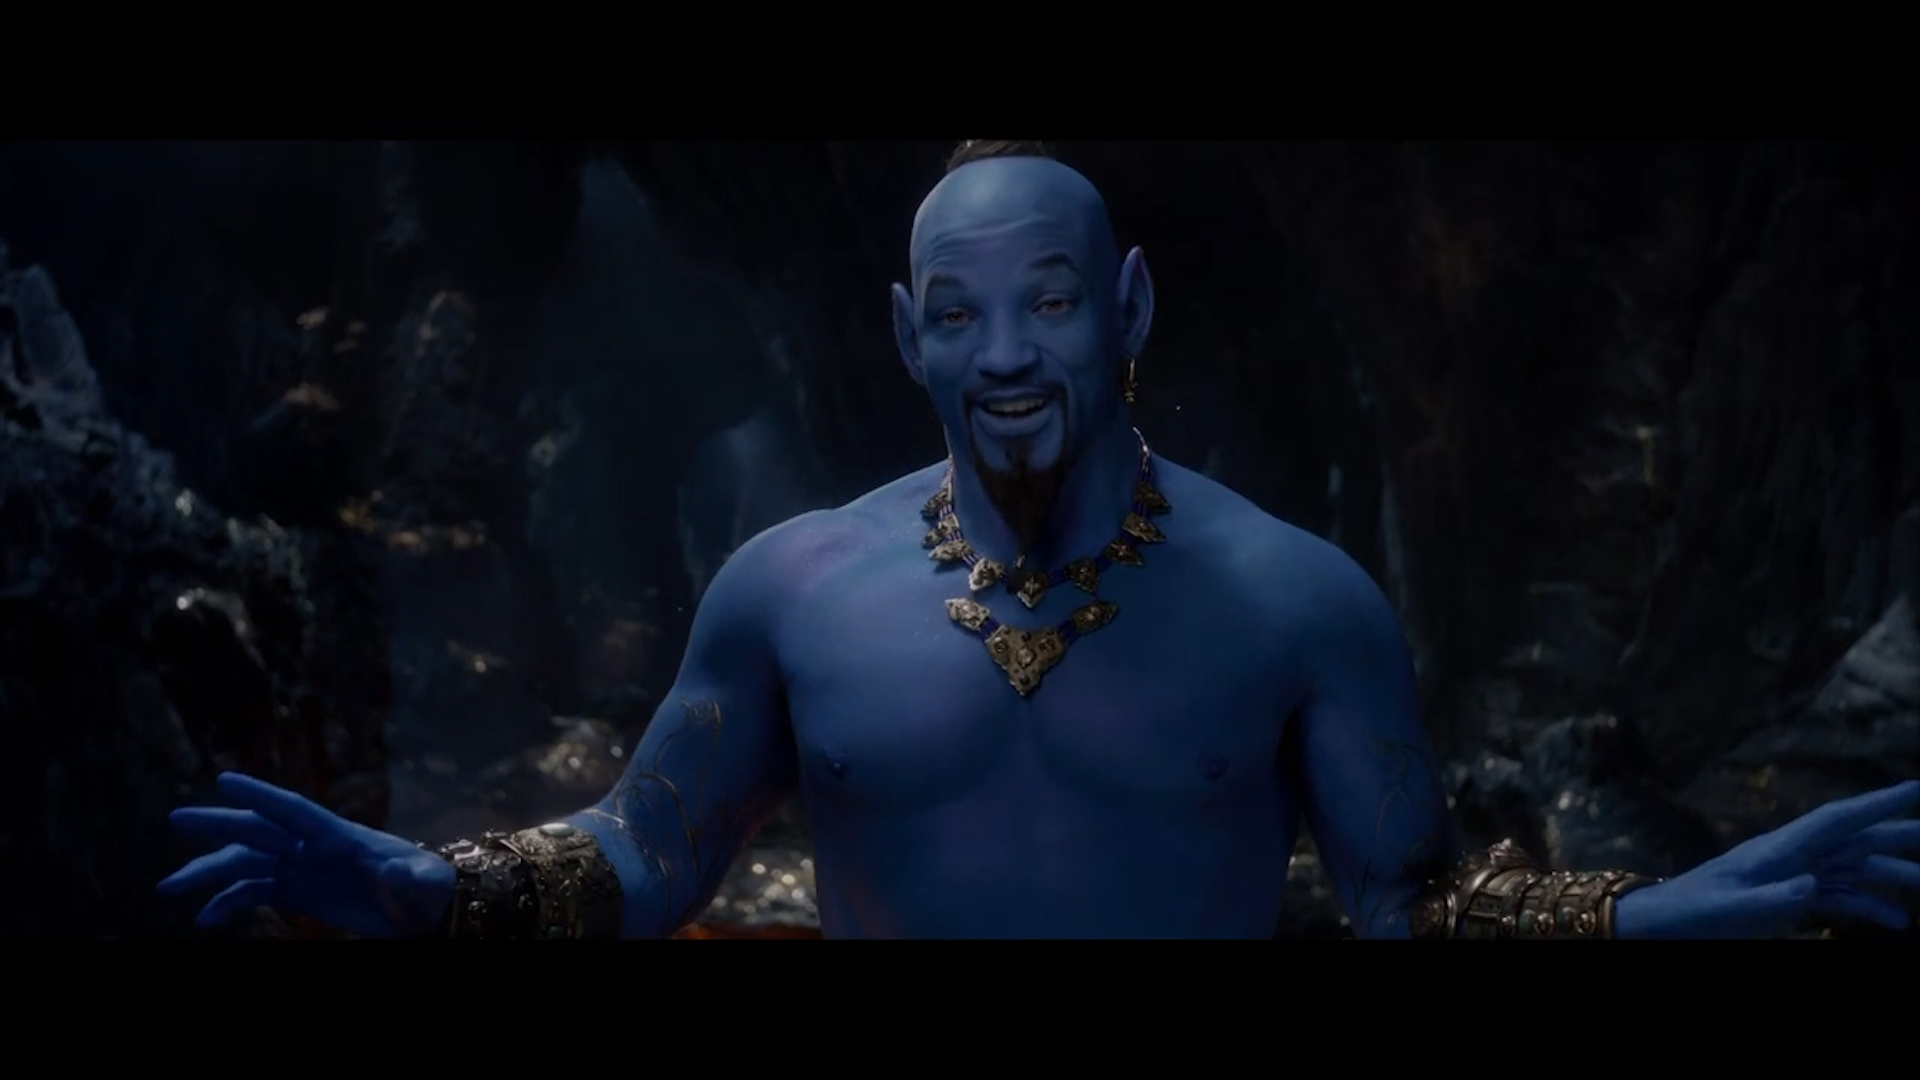 Will Smith is a buff, blue Genie in new 'Aladdin' teaser